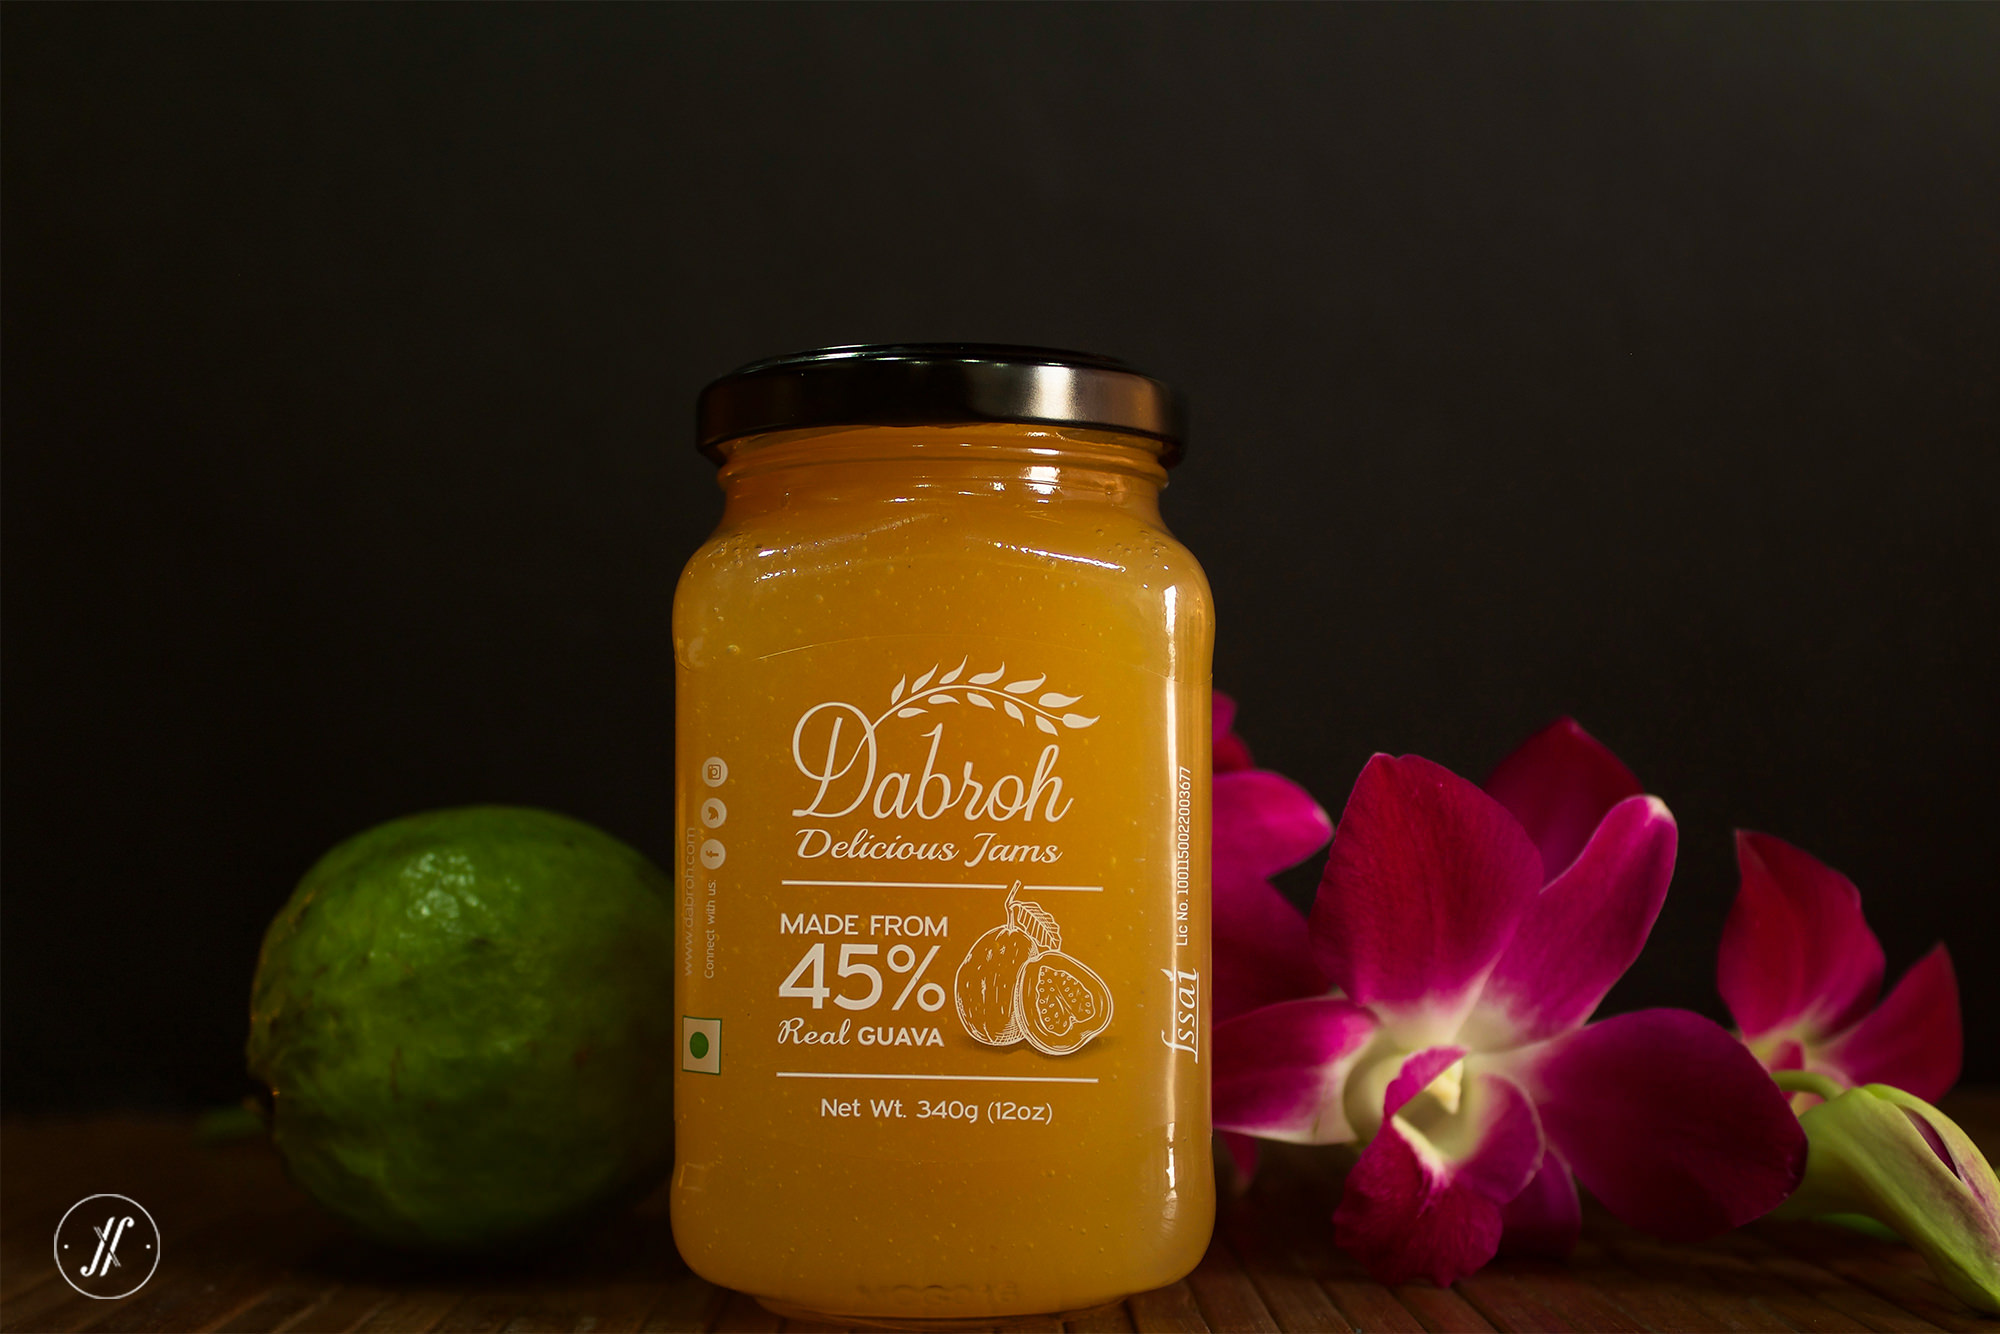 Dabroh-packaging-design-yellow-fishes-branding-agency-Consultancy-design-agency-mumbai-jams-best-packaging-design-logo-design-guava-jam-packaging-design.jpgDabroh-packaging-design-yellow-fishes-branding-agency-Consultancy-design-agency-mumbai-jams-best-packaging-design-logo-design-guava-jam-packaging-design